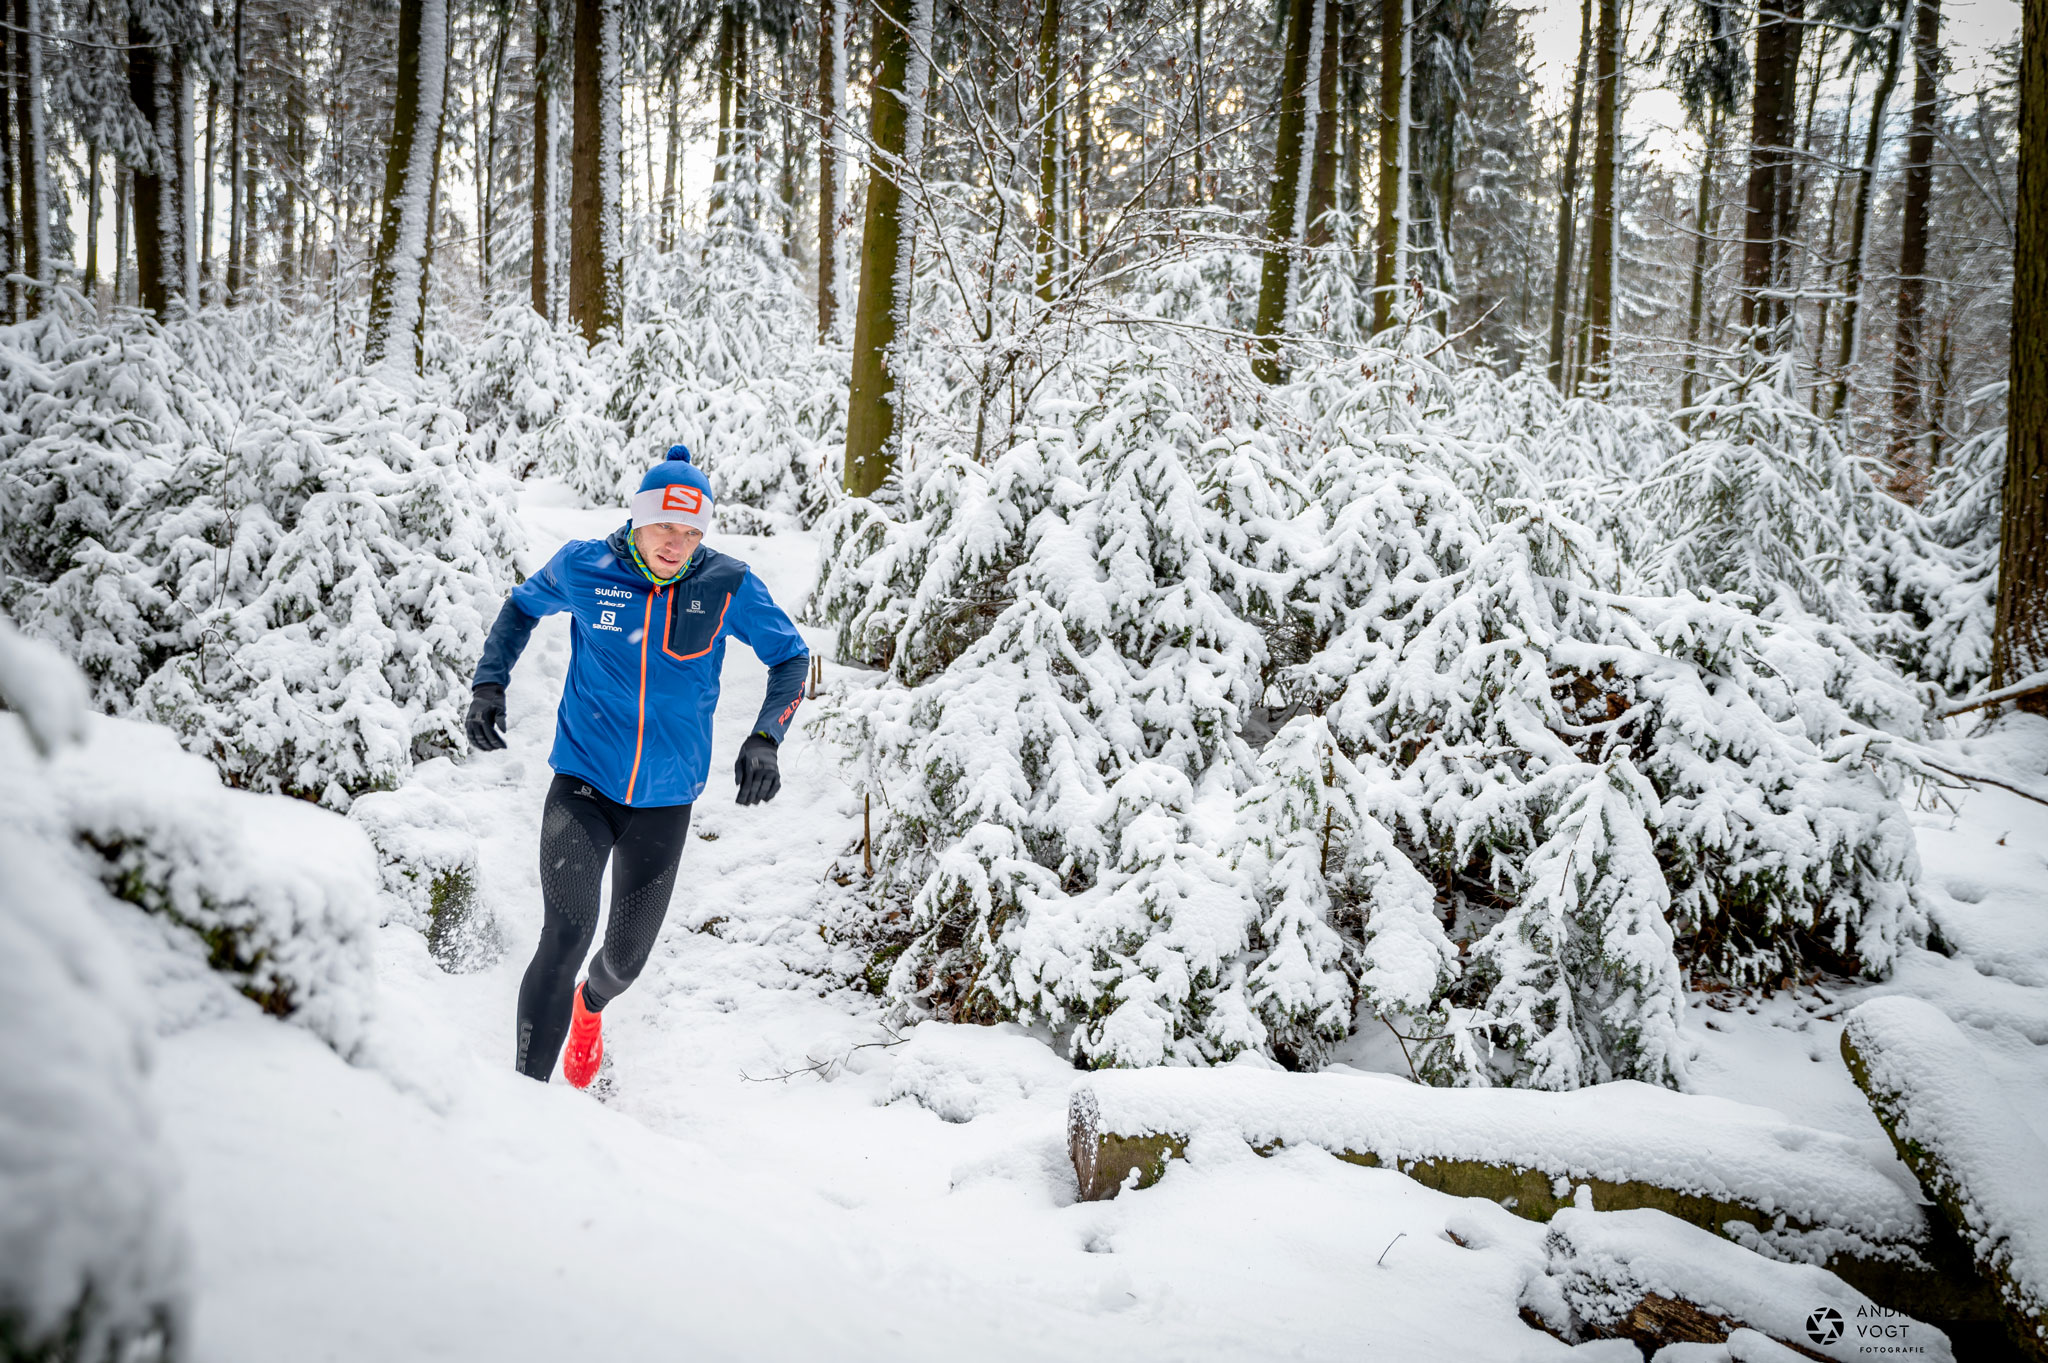 trailrunning-marcus-36-andreas-vogt-fotograf-aalen